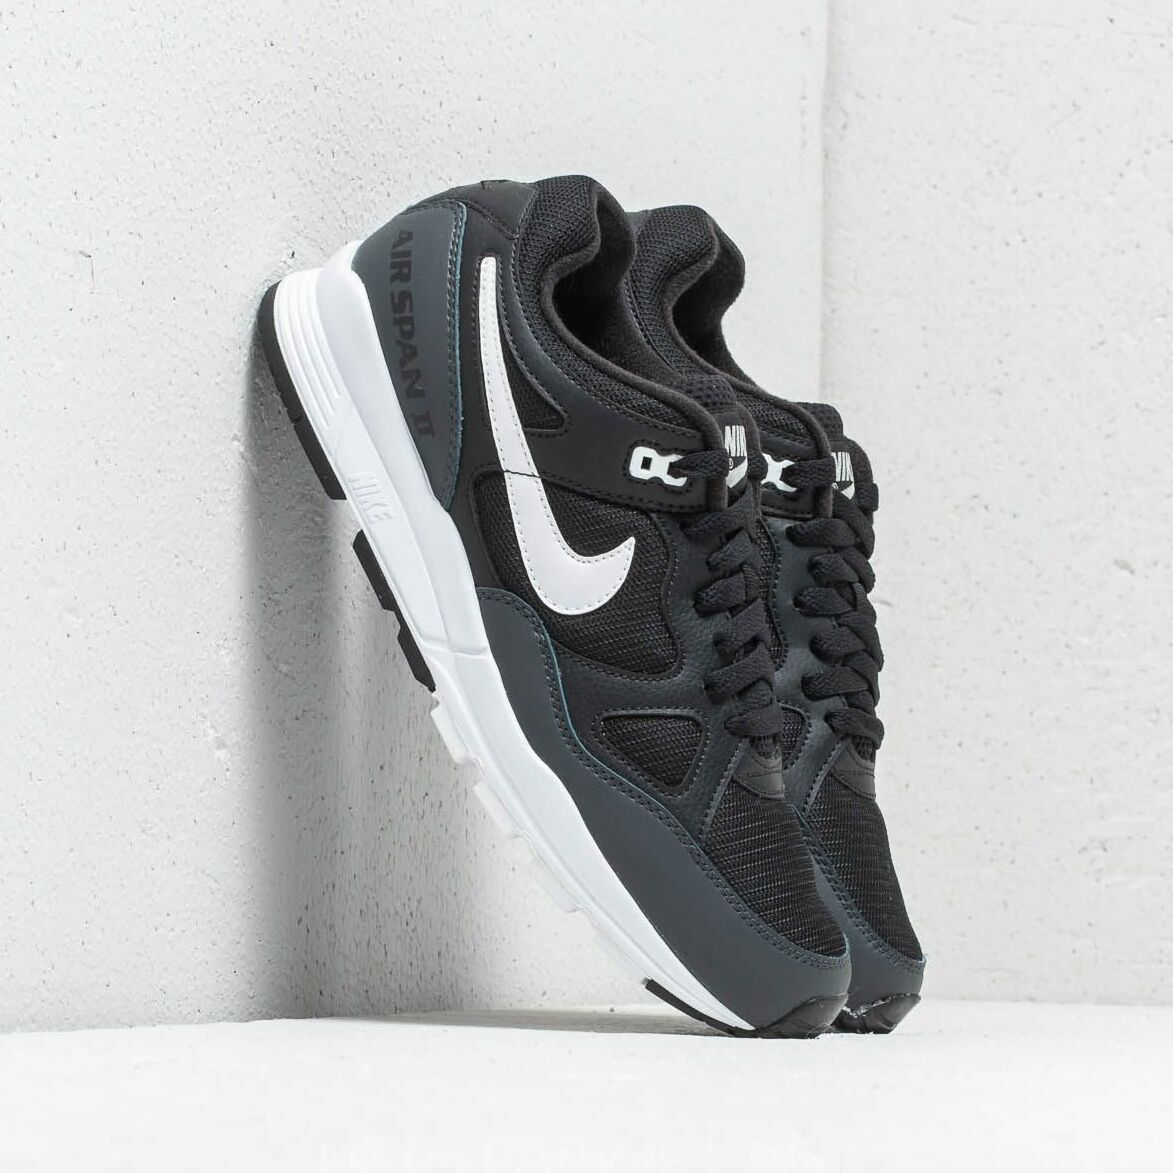 Nike Air Span II Black/ White-Anthracite EUR 43